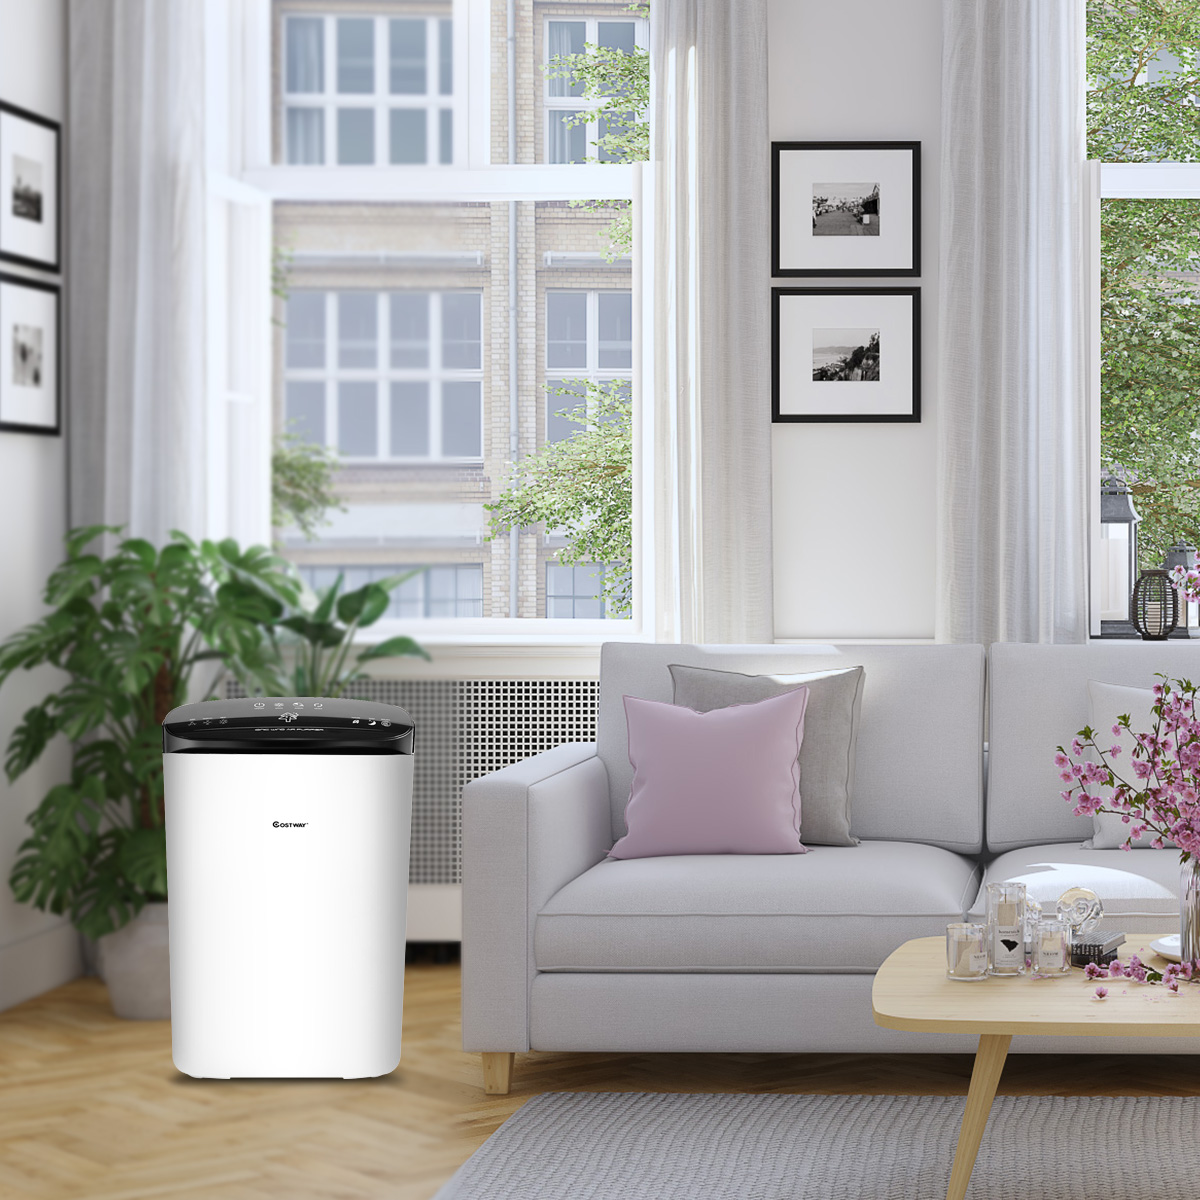 Powerful-Air-Purifier-Cleaner-HEPA-Filter-to-Remove-Odor-Dust-Mold-Smoke thumbnail 7